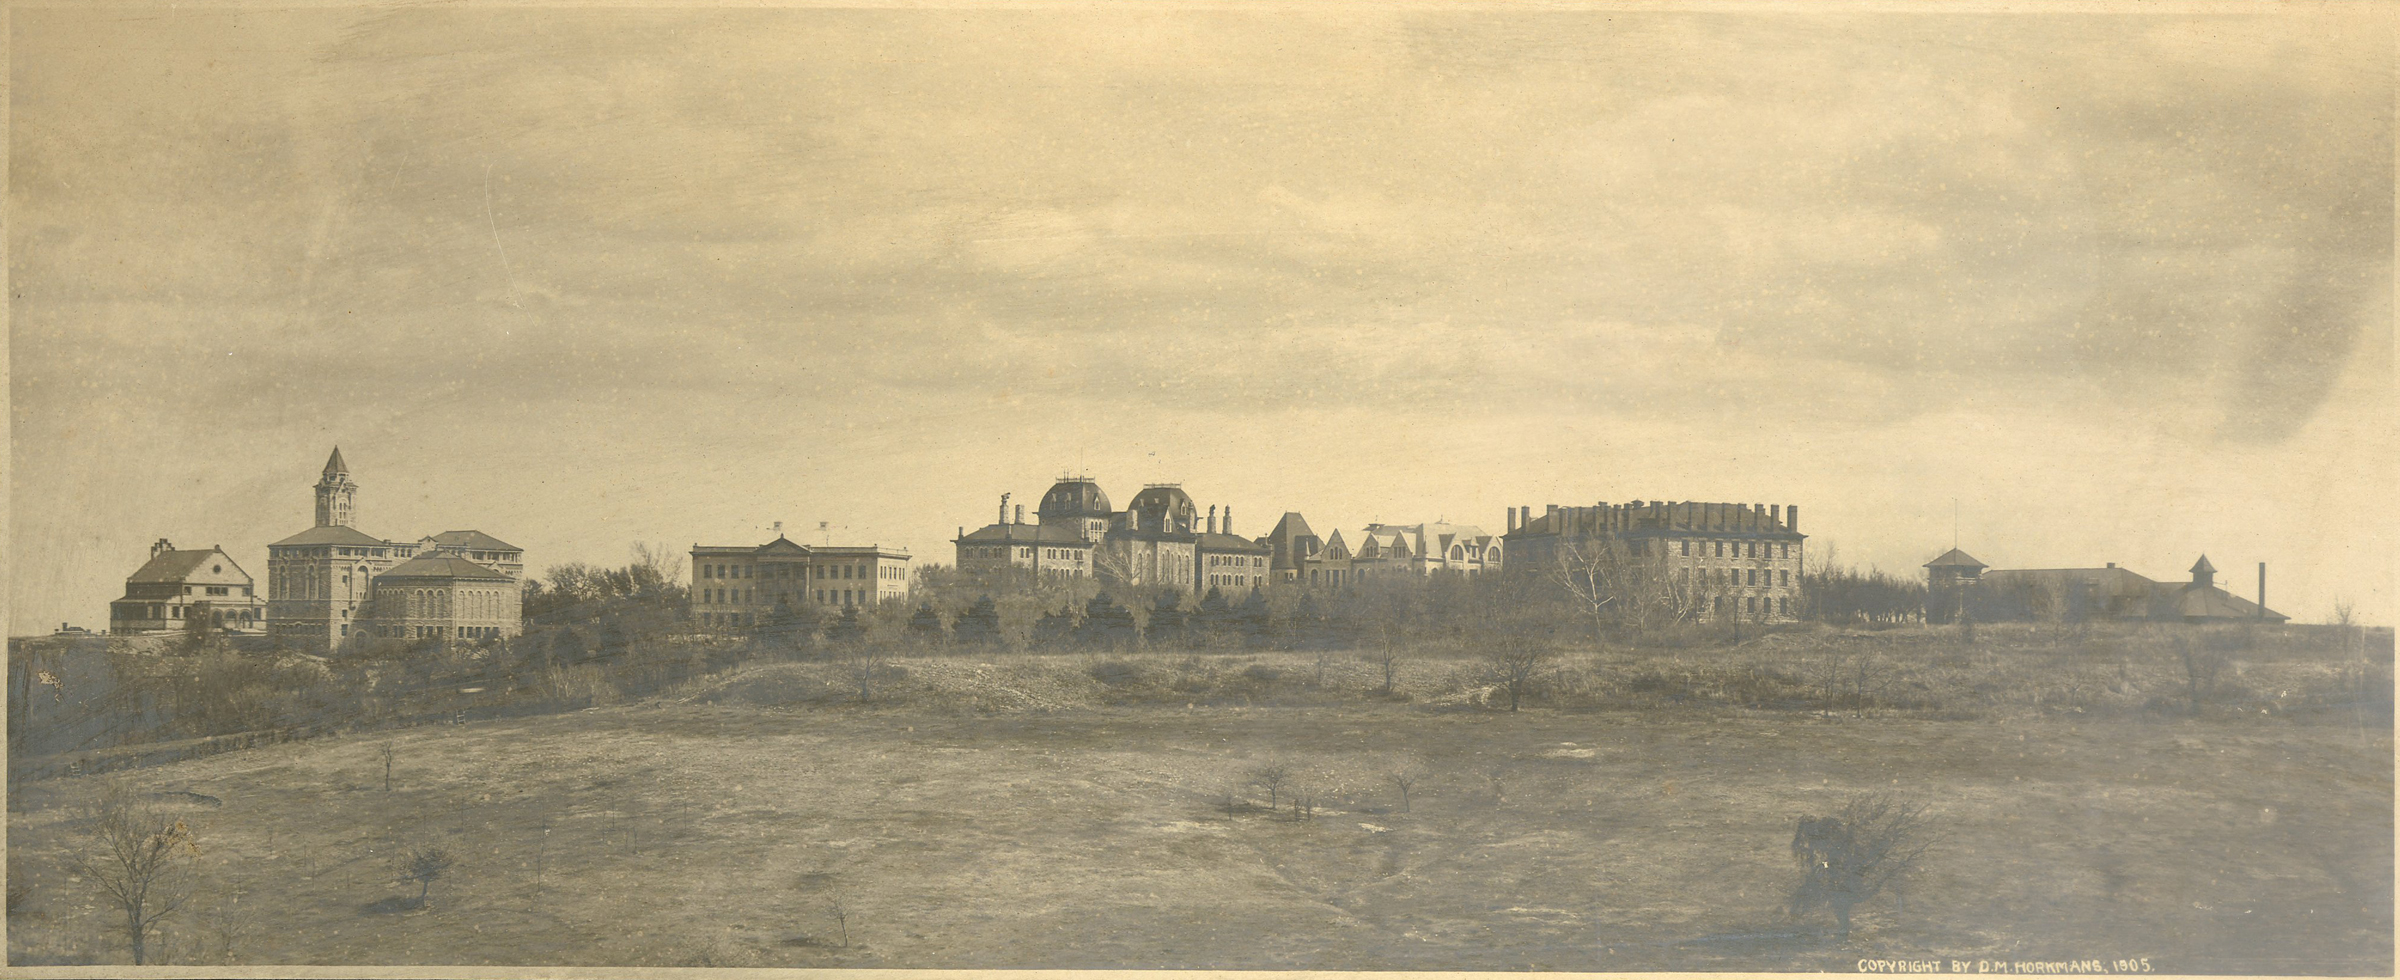 KU Getty Campus Panoramic-1905.jpg